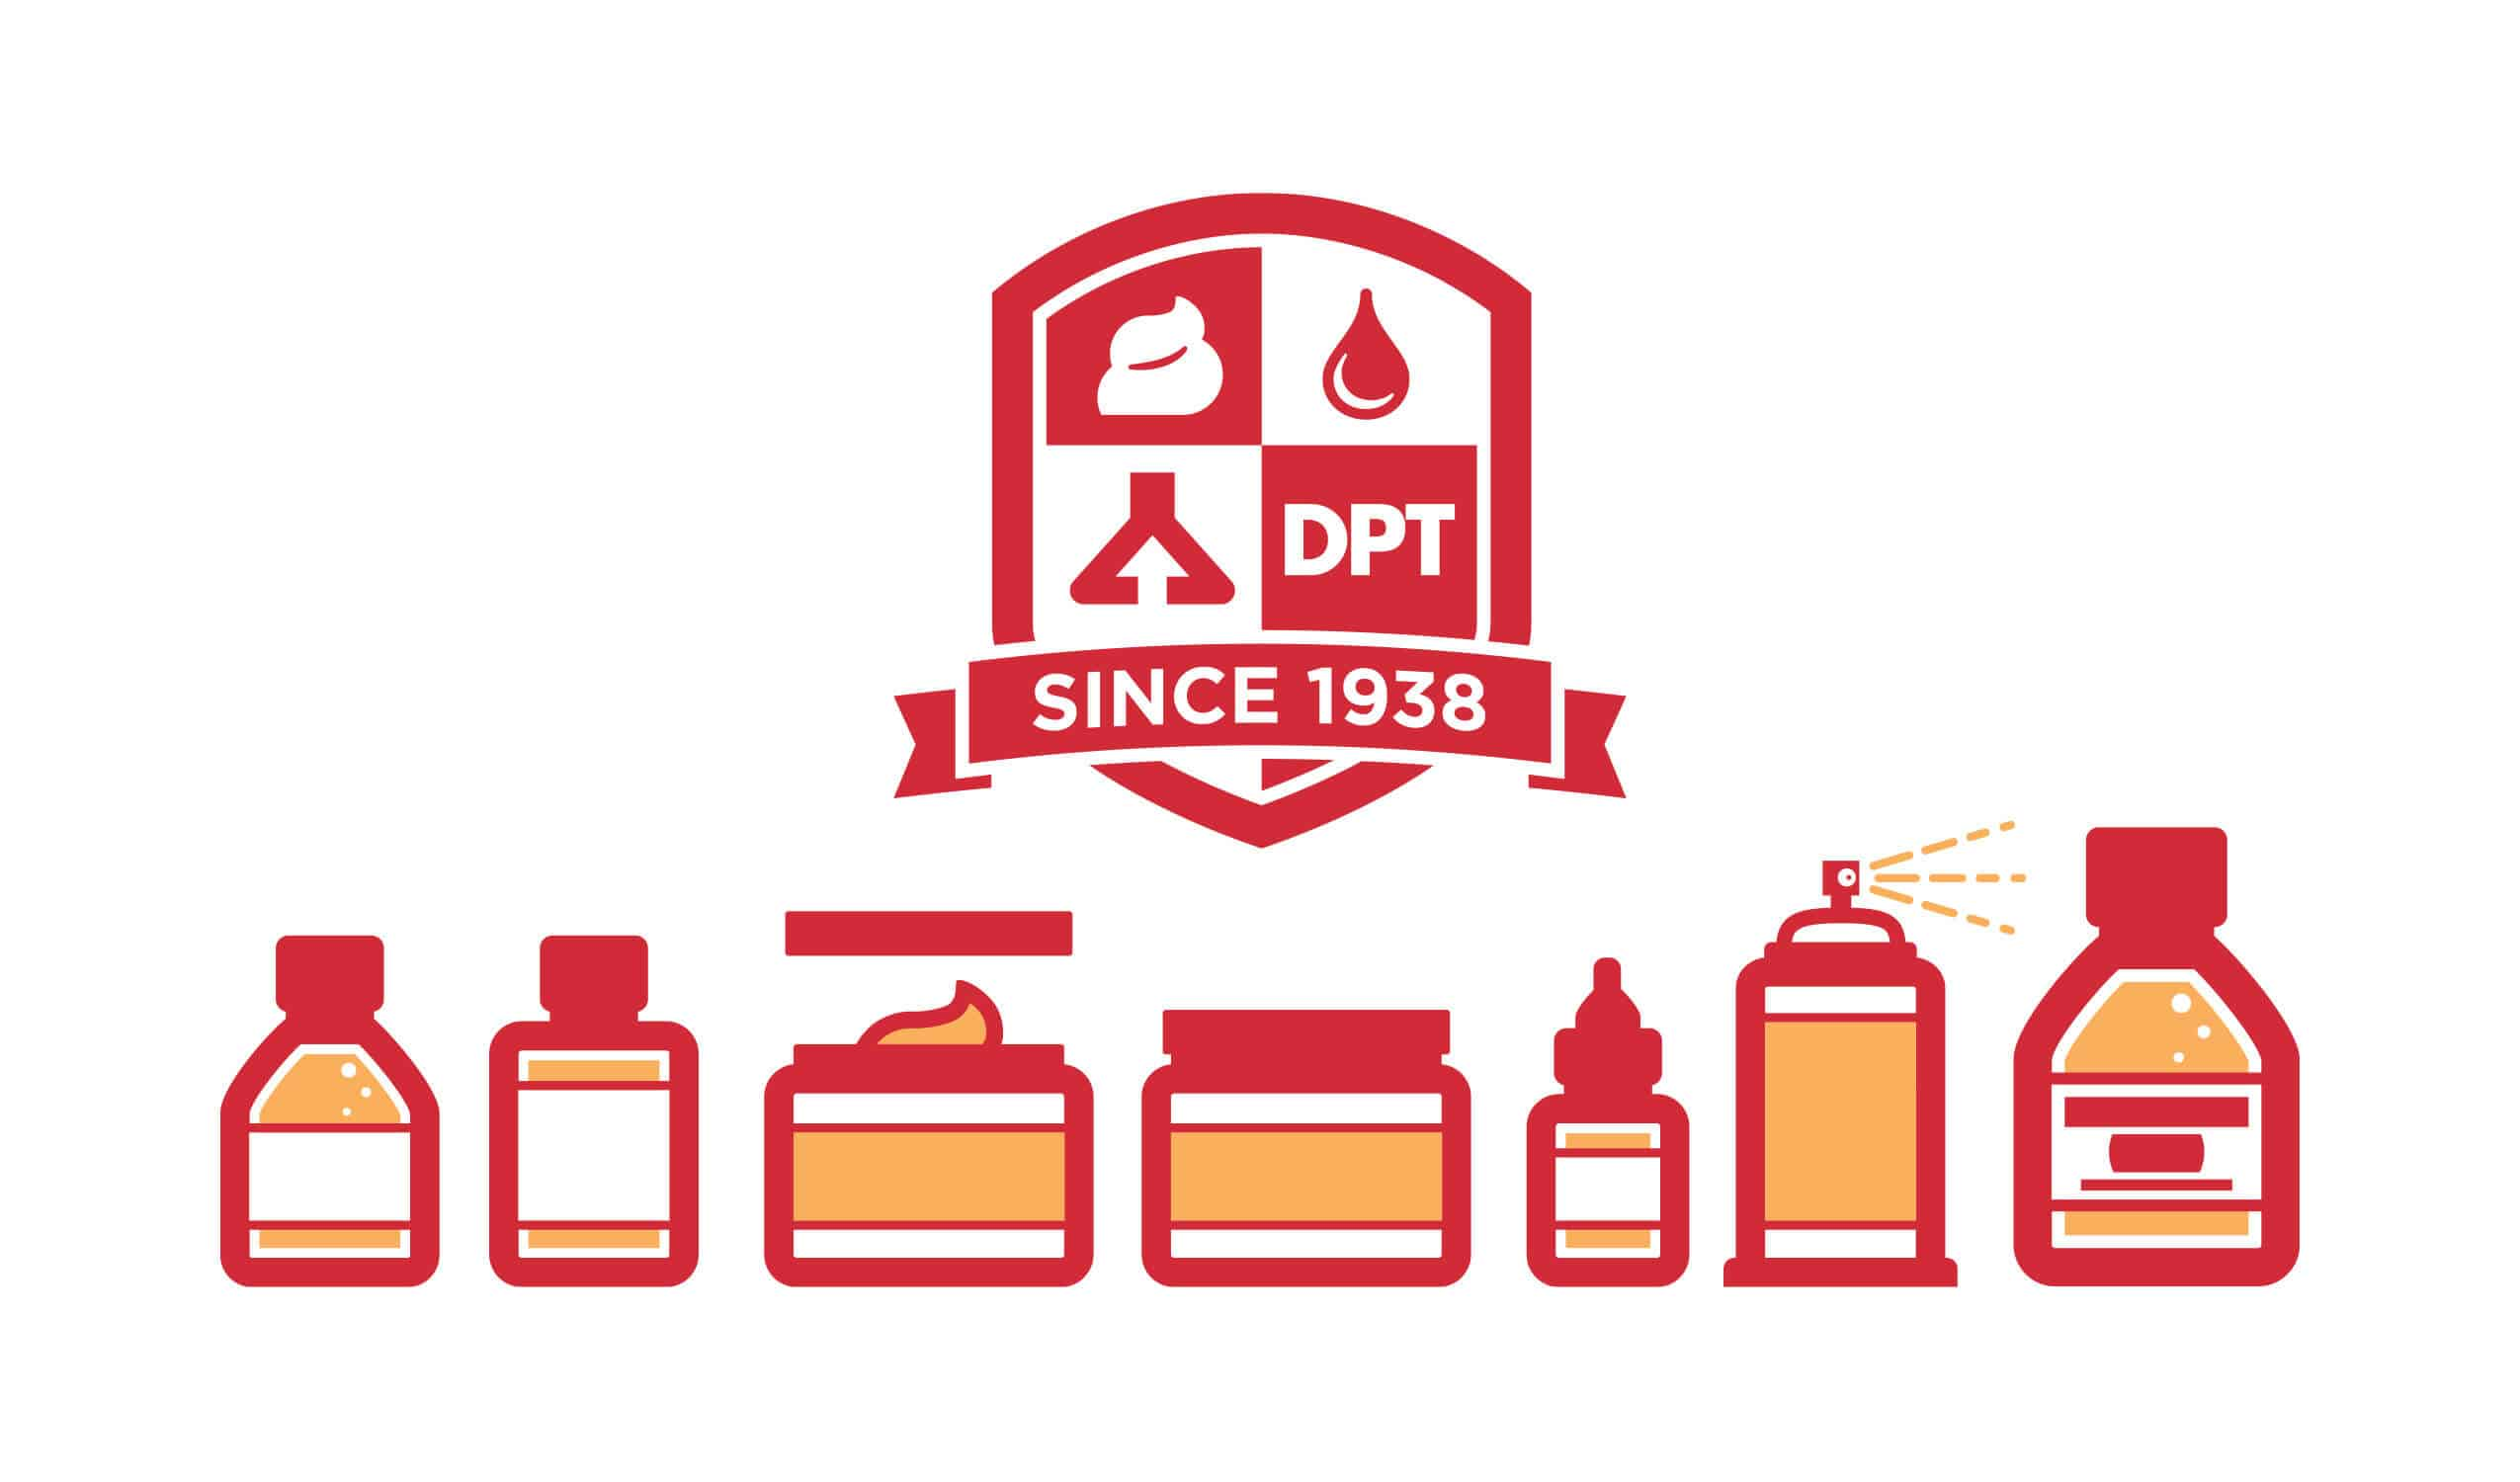 DPT Animation graphic